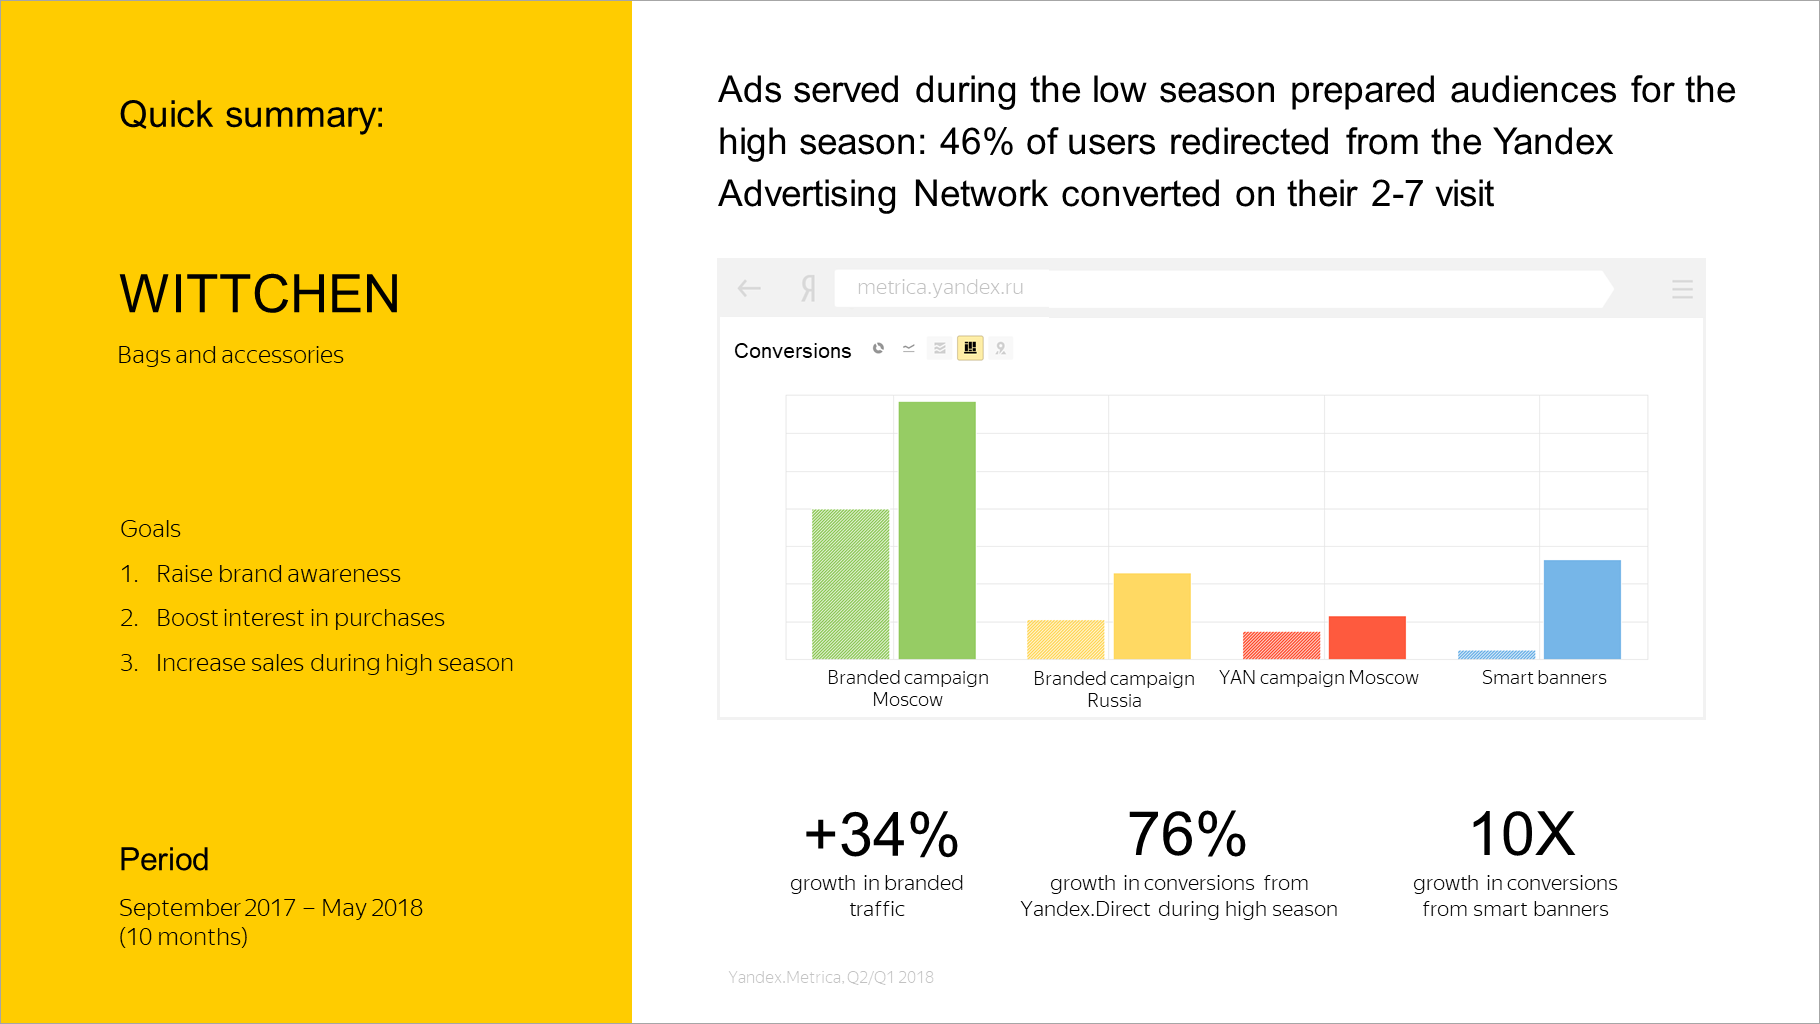 Ads served during the low season prepared audiences for the high season: 46% of users redirected from the Yandex Advertising Network converted on their 2-7 visit